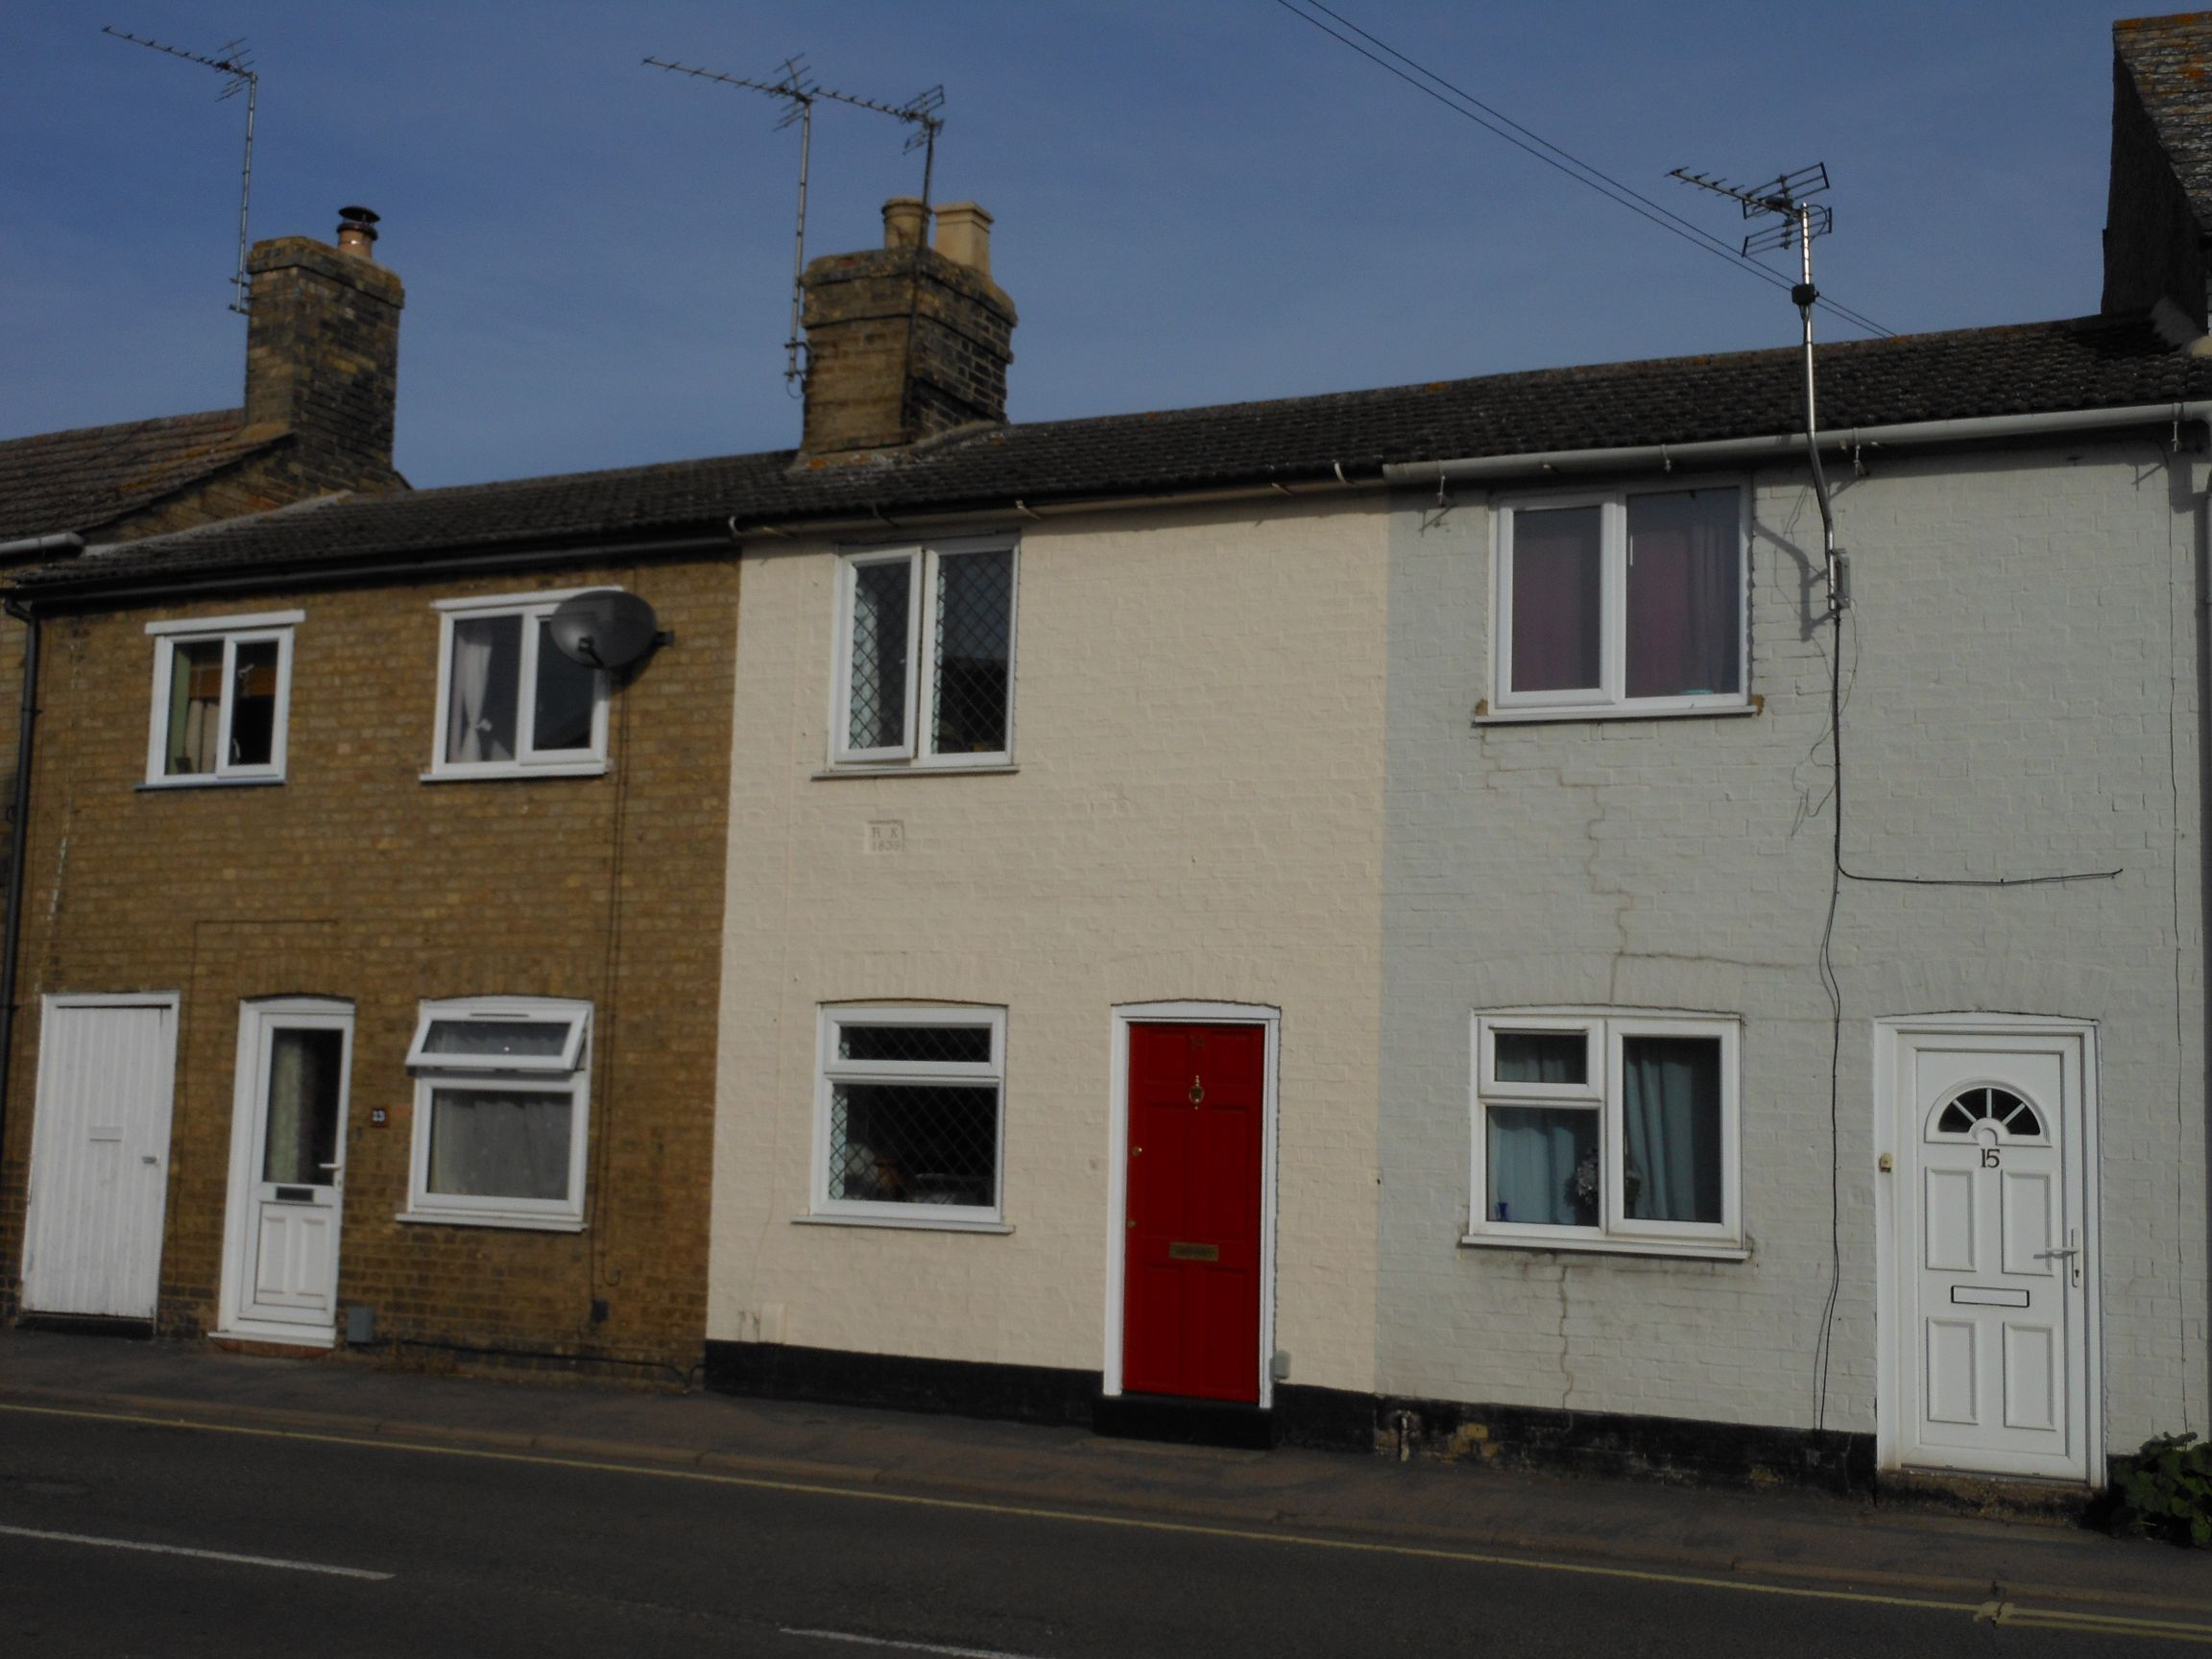 1 bedroom terraced house to rent Godmanchester – London Street, PE29 2HU